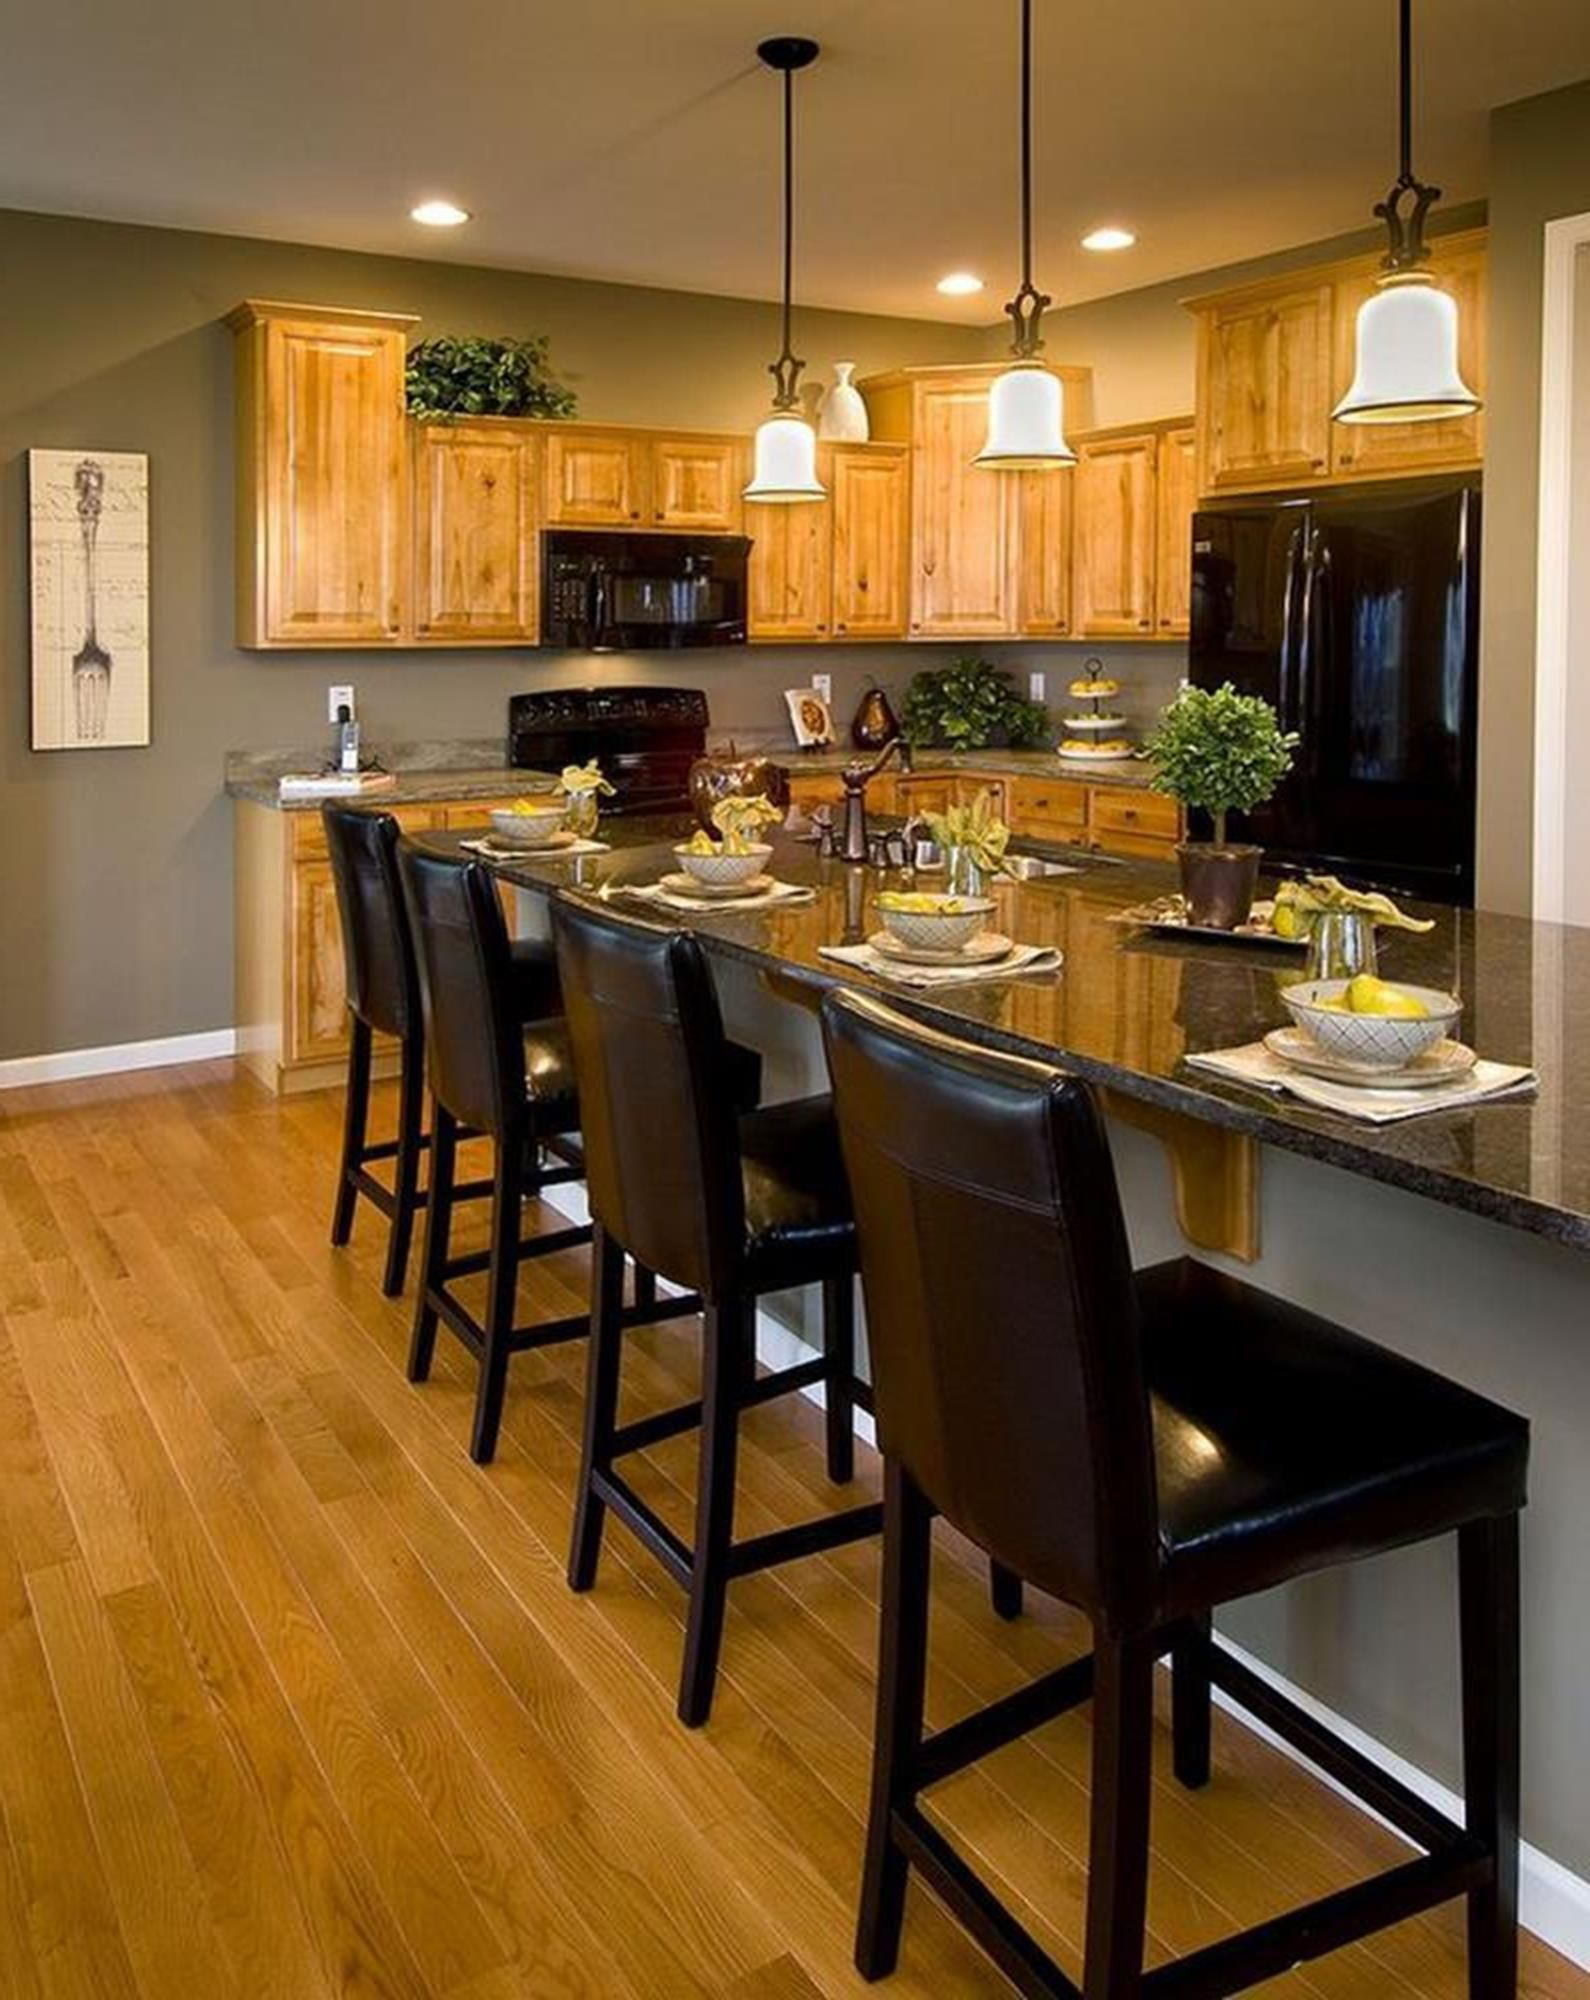 20 perfect kitchen wall colors with oak cabinets for 2019 on good wall colors for kitchens id=38171